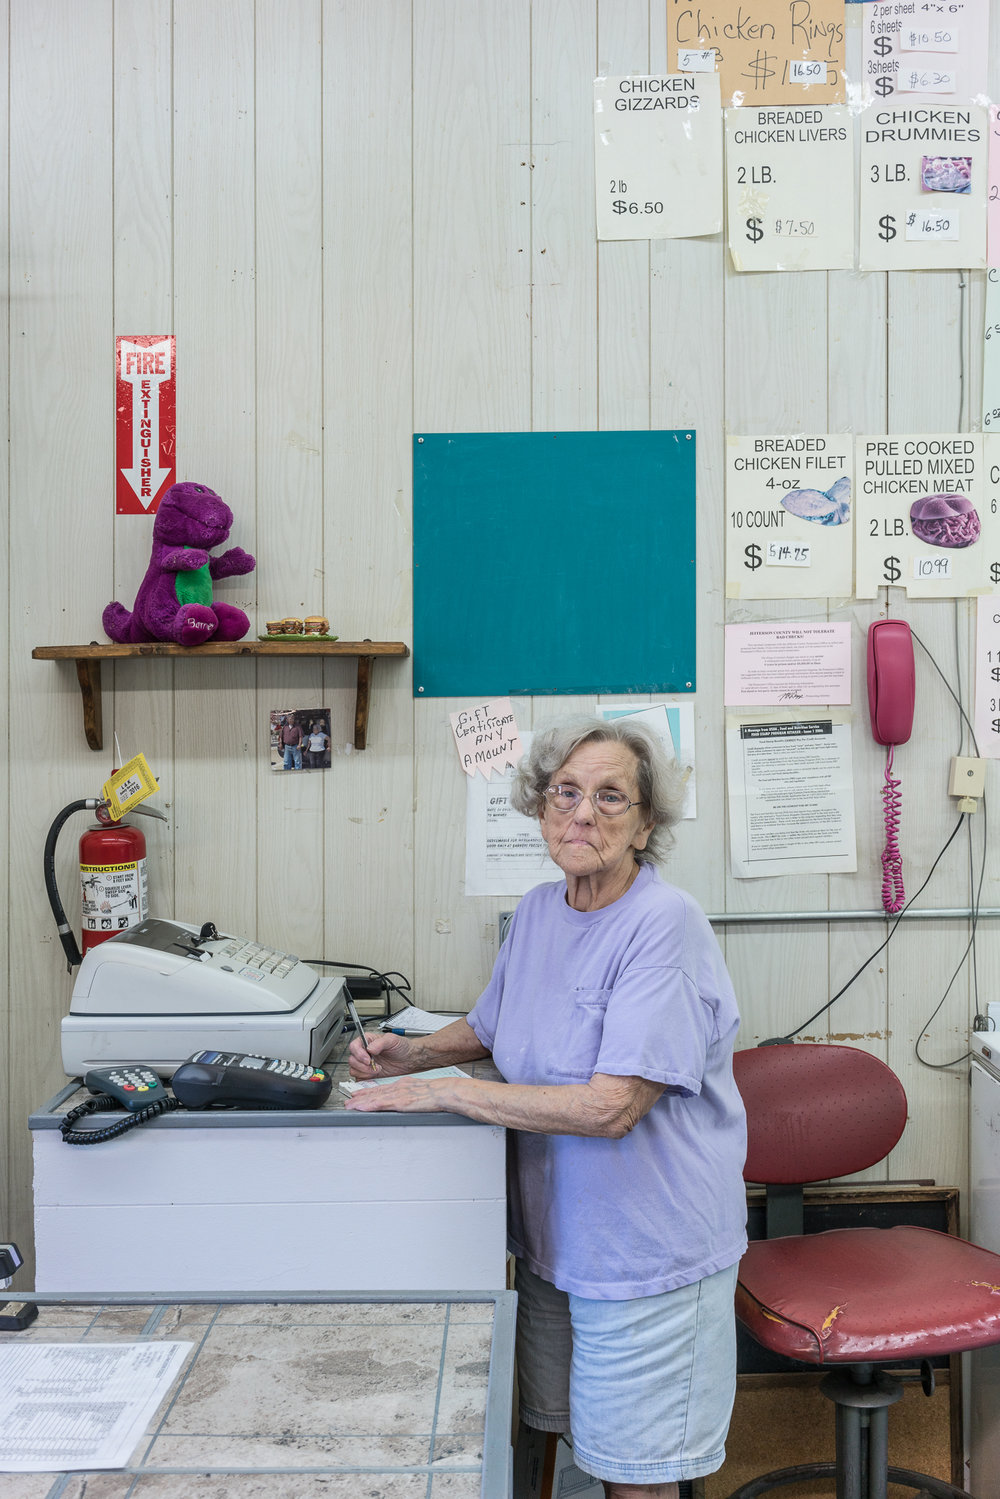 Juanita at the Frozen Foods Shop, De Soto, Missouri, 2017